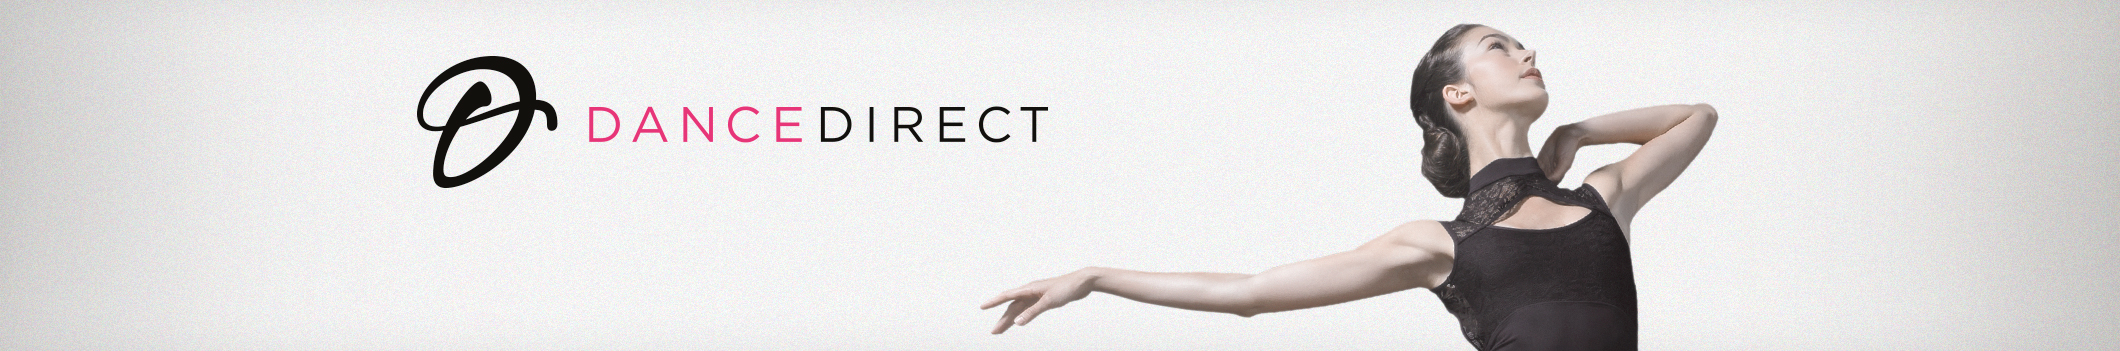 Dance Direct's New Look